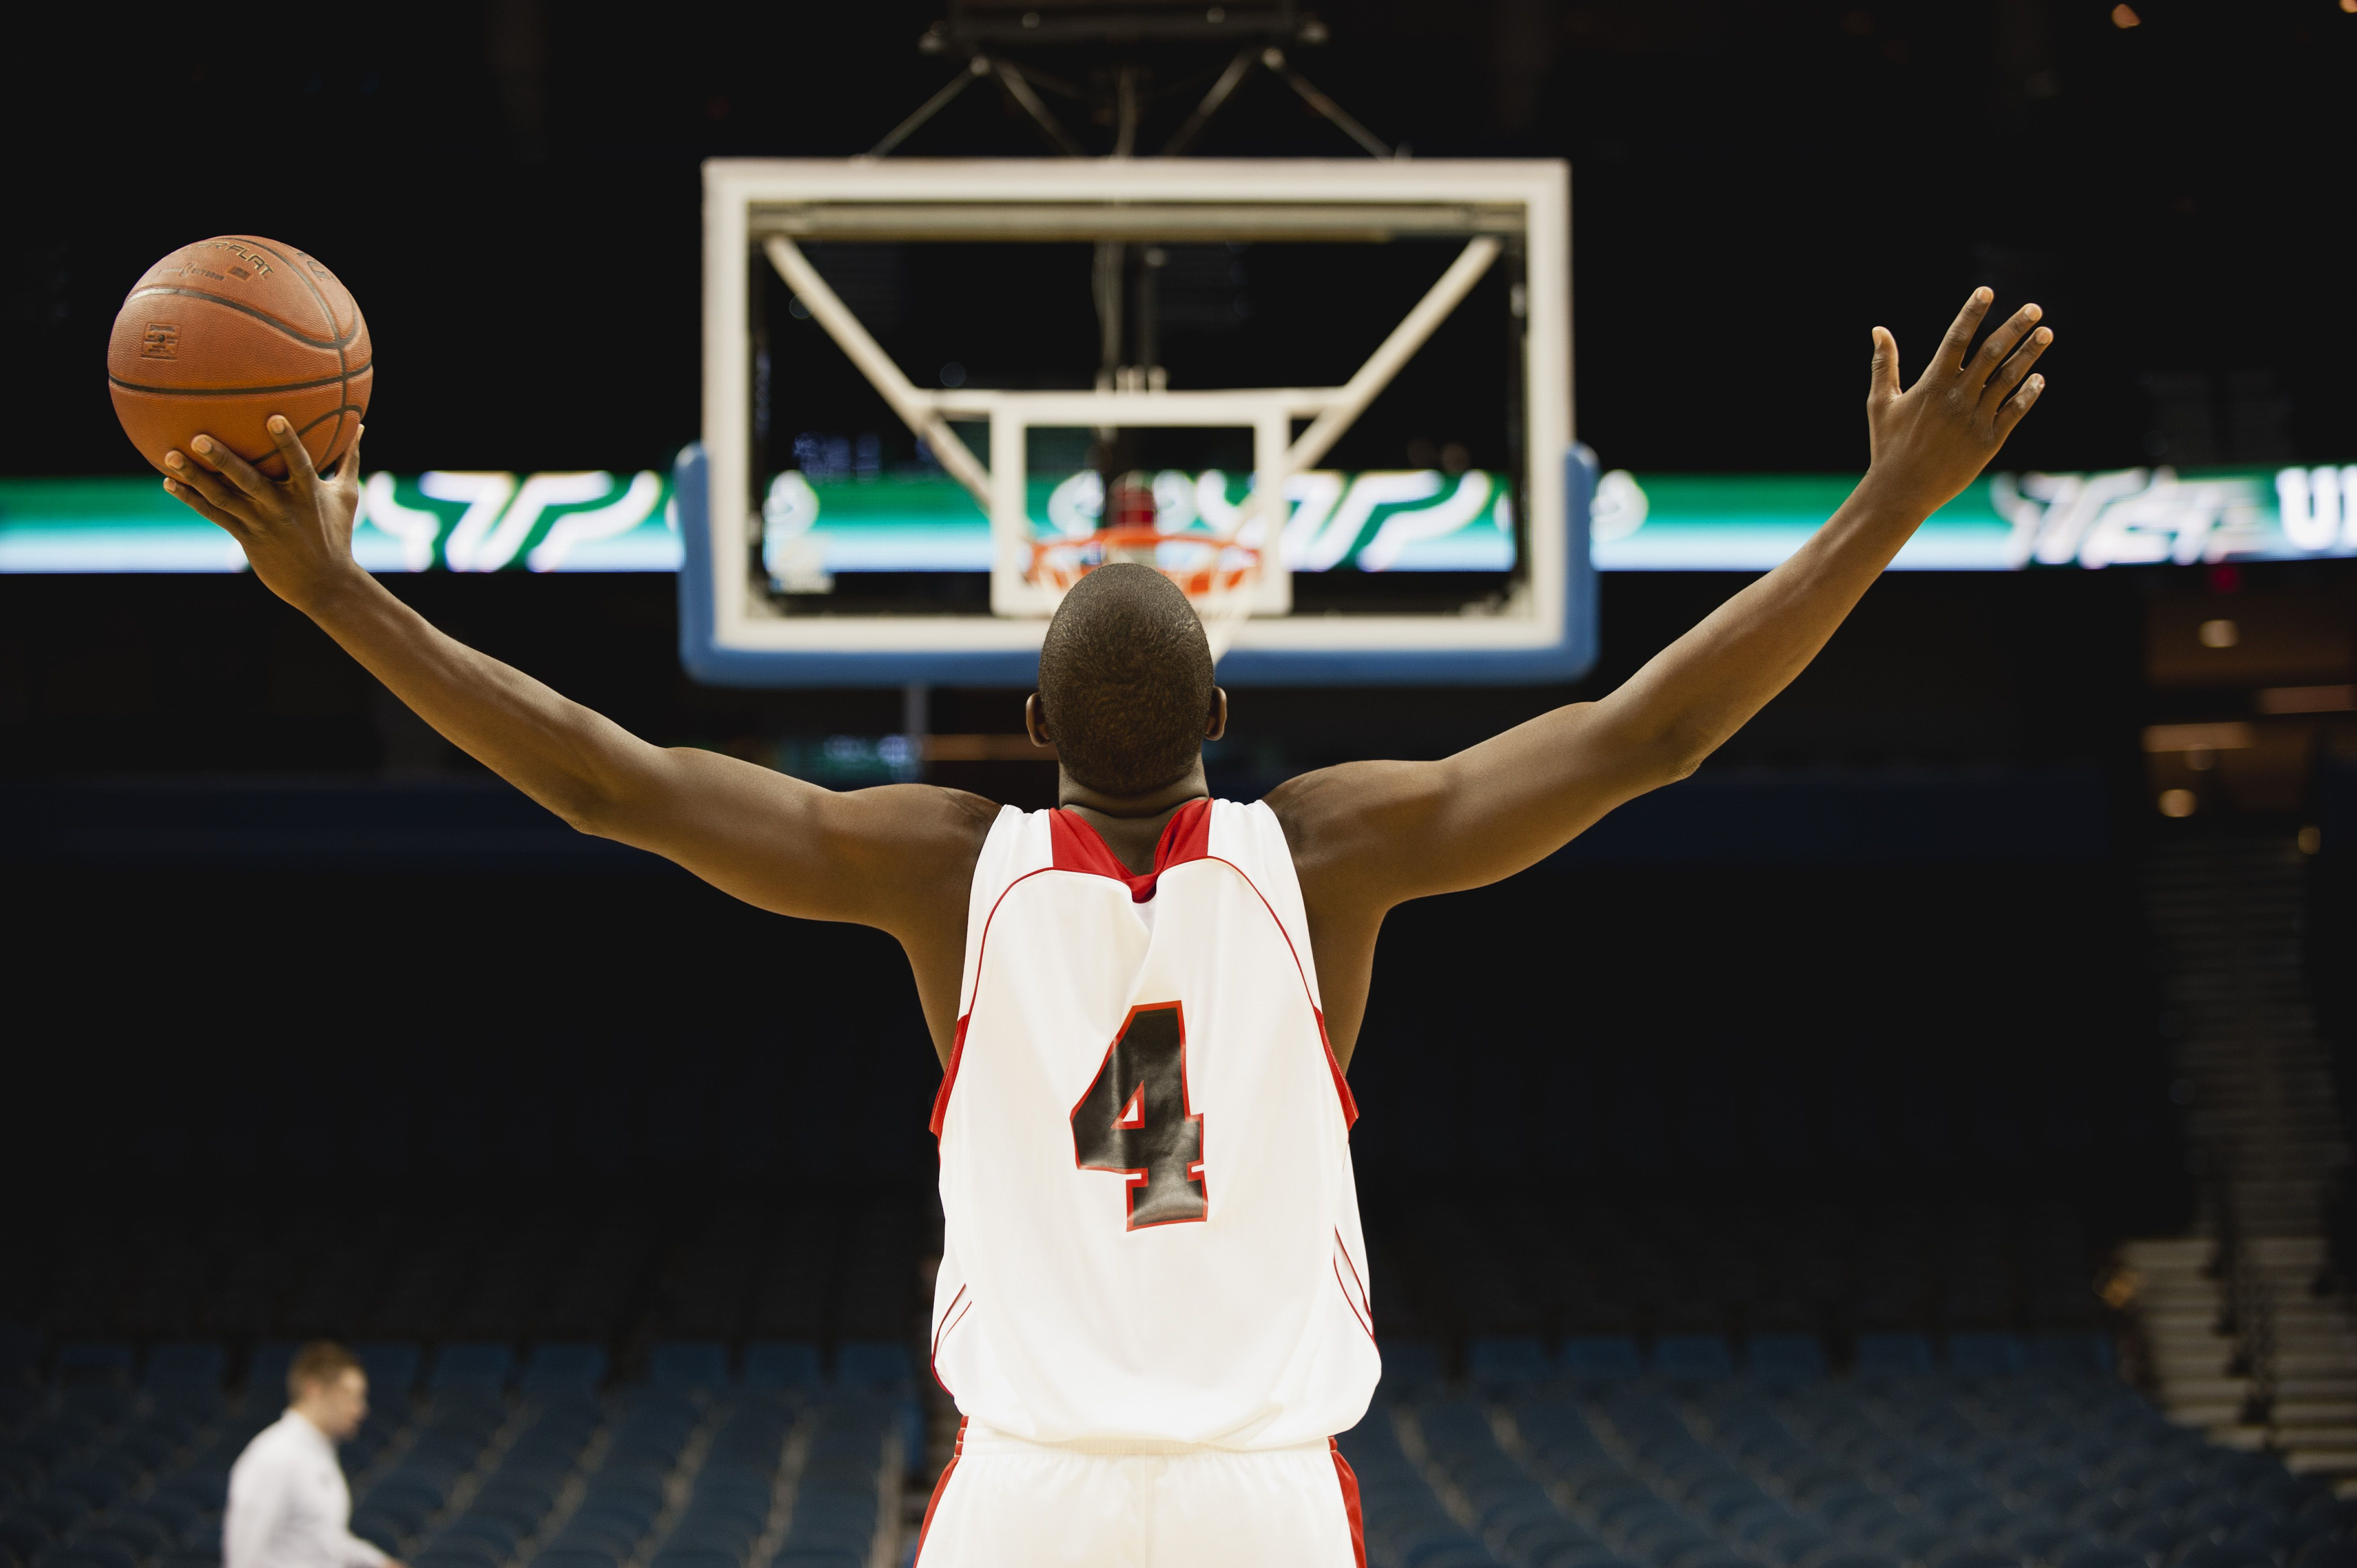 Basketball player standing in basketball court with arms outstretched, rear view